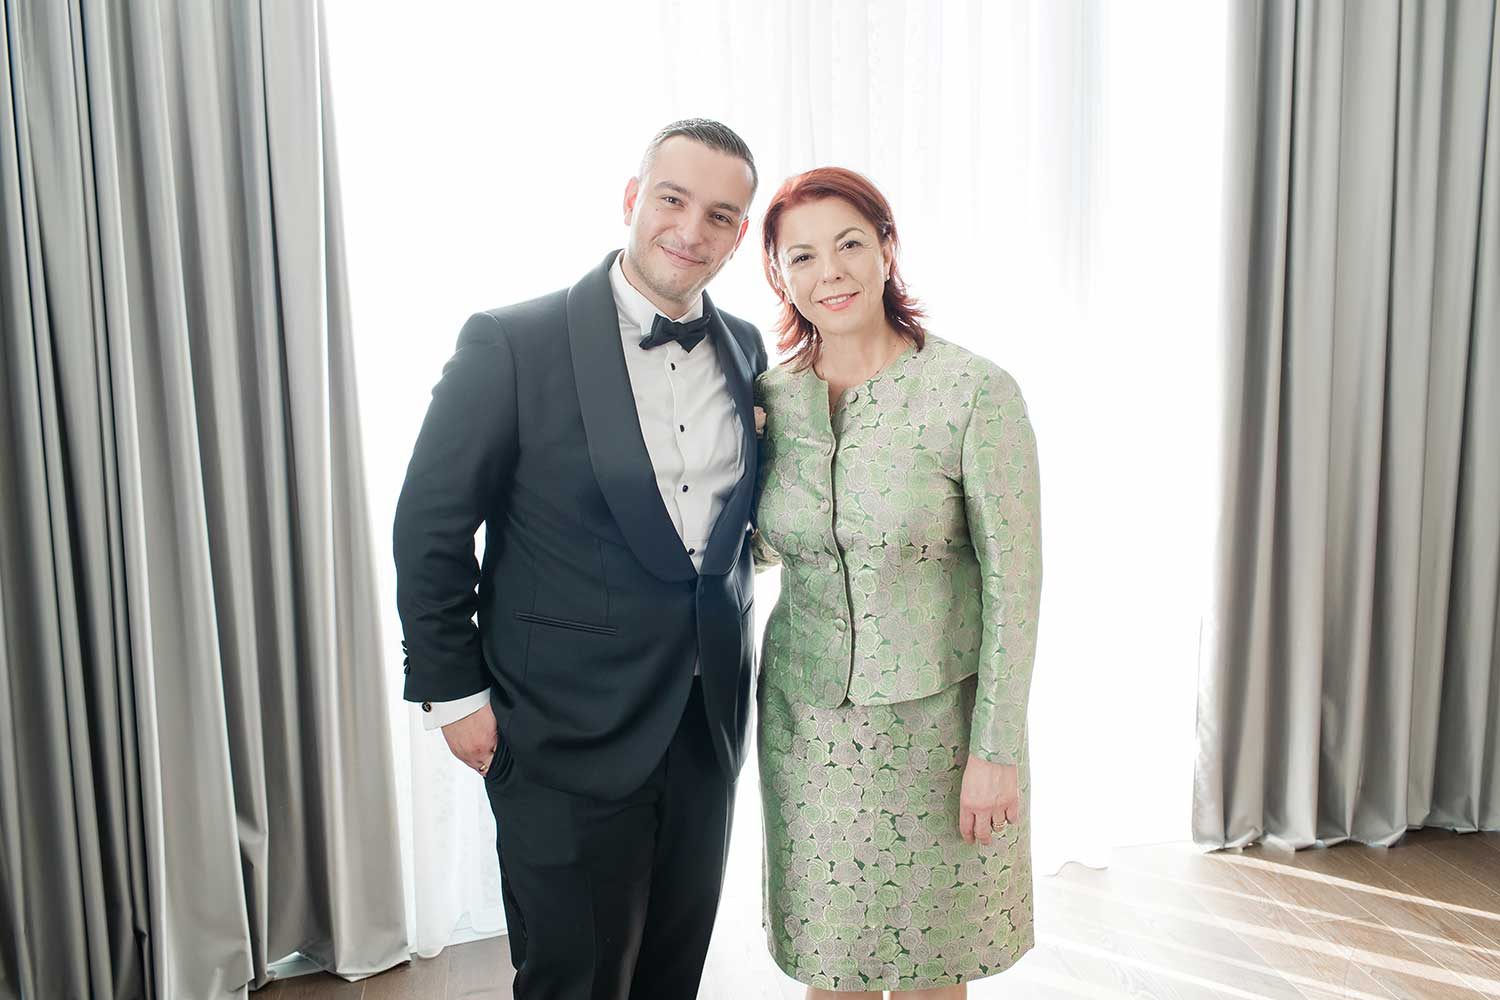 The groom and his mother